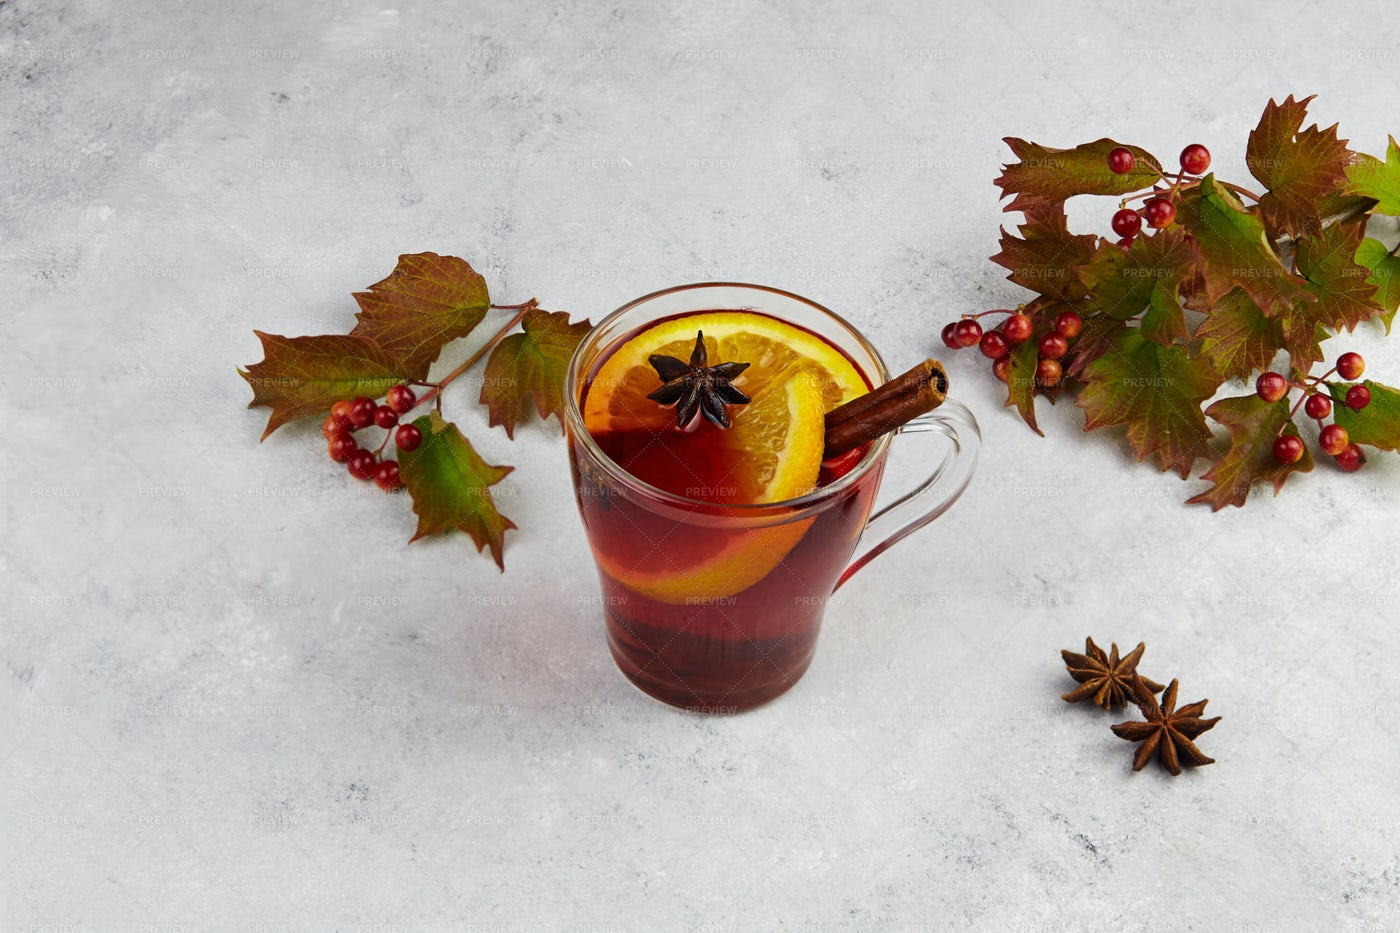 Glass Of Mulled Wine: Stock Photos